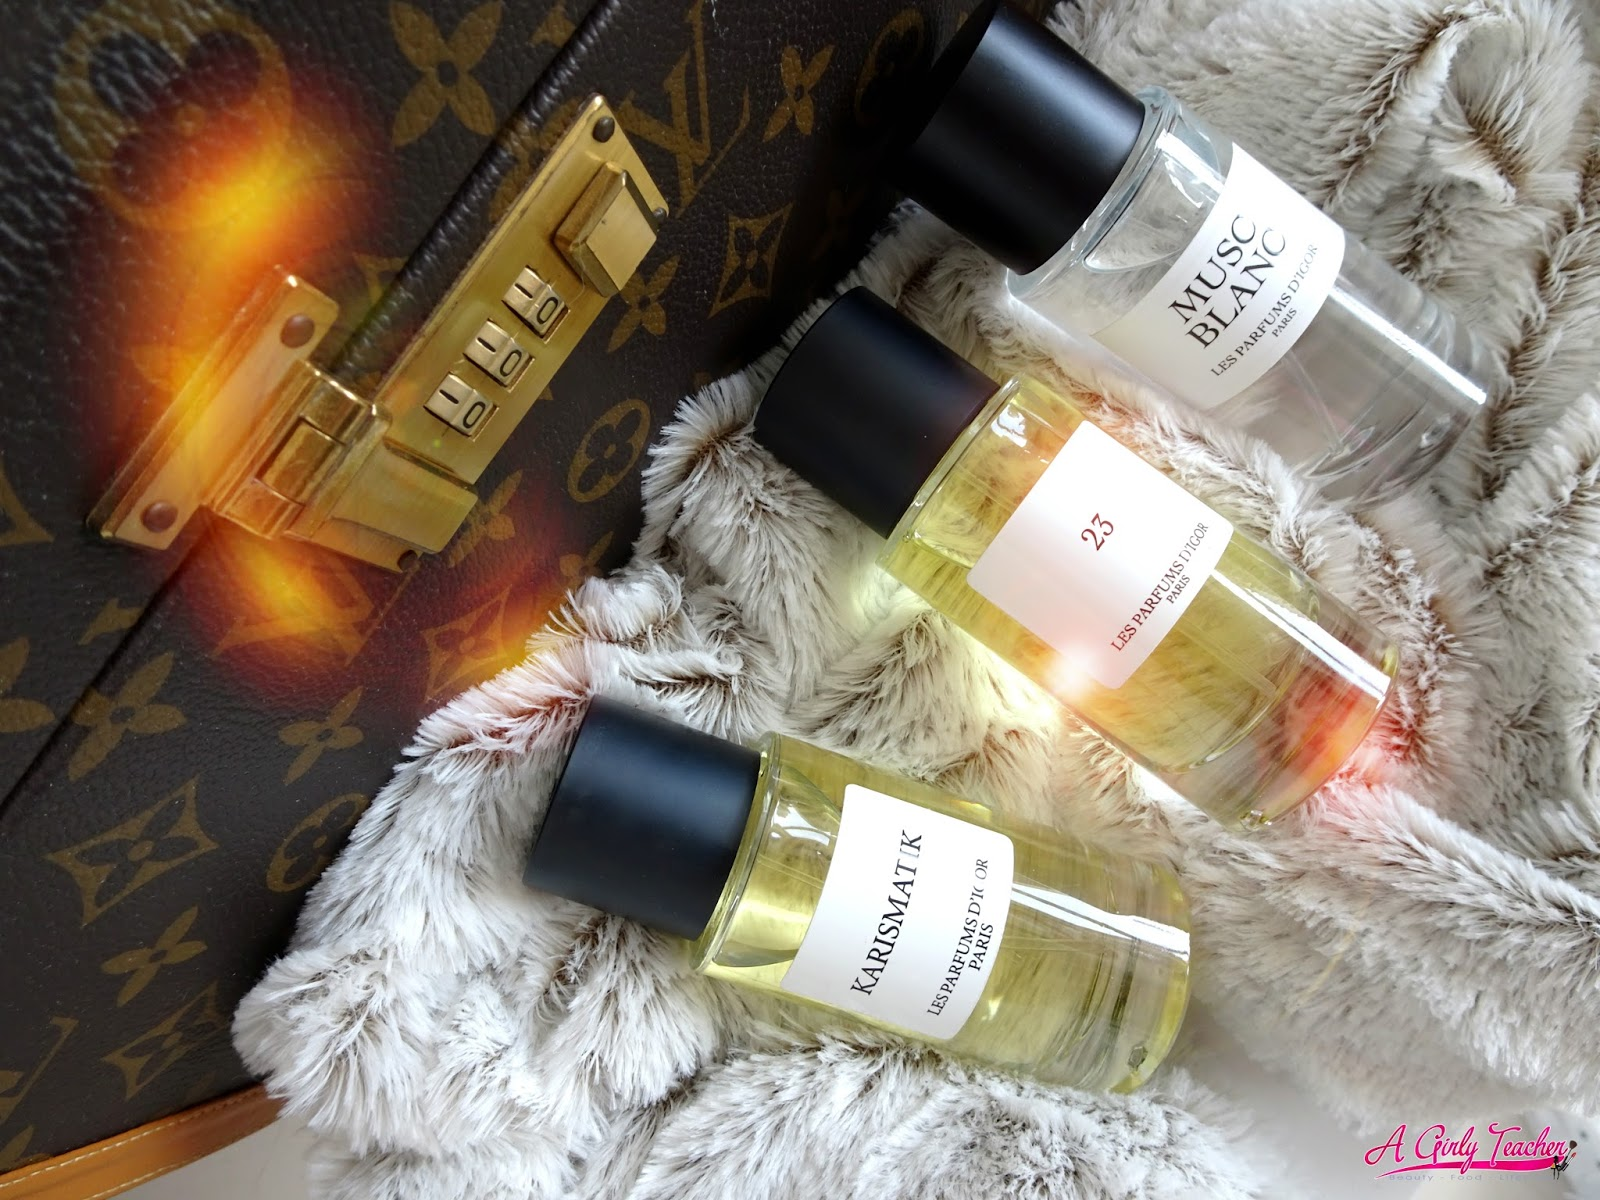 Des A Girly Collection TeacherBlack D'igor Parfums OudyLa Privée TFcJlK1